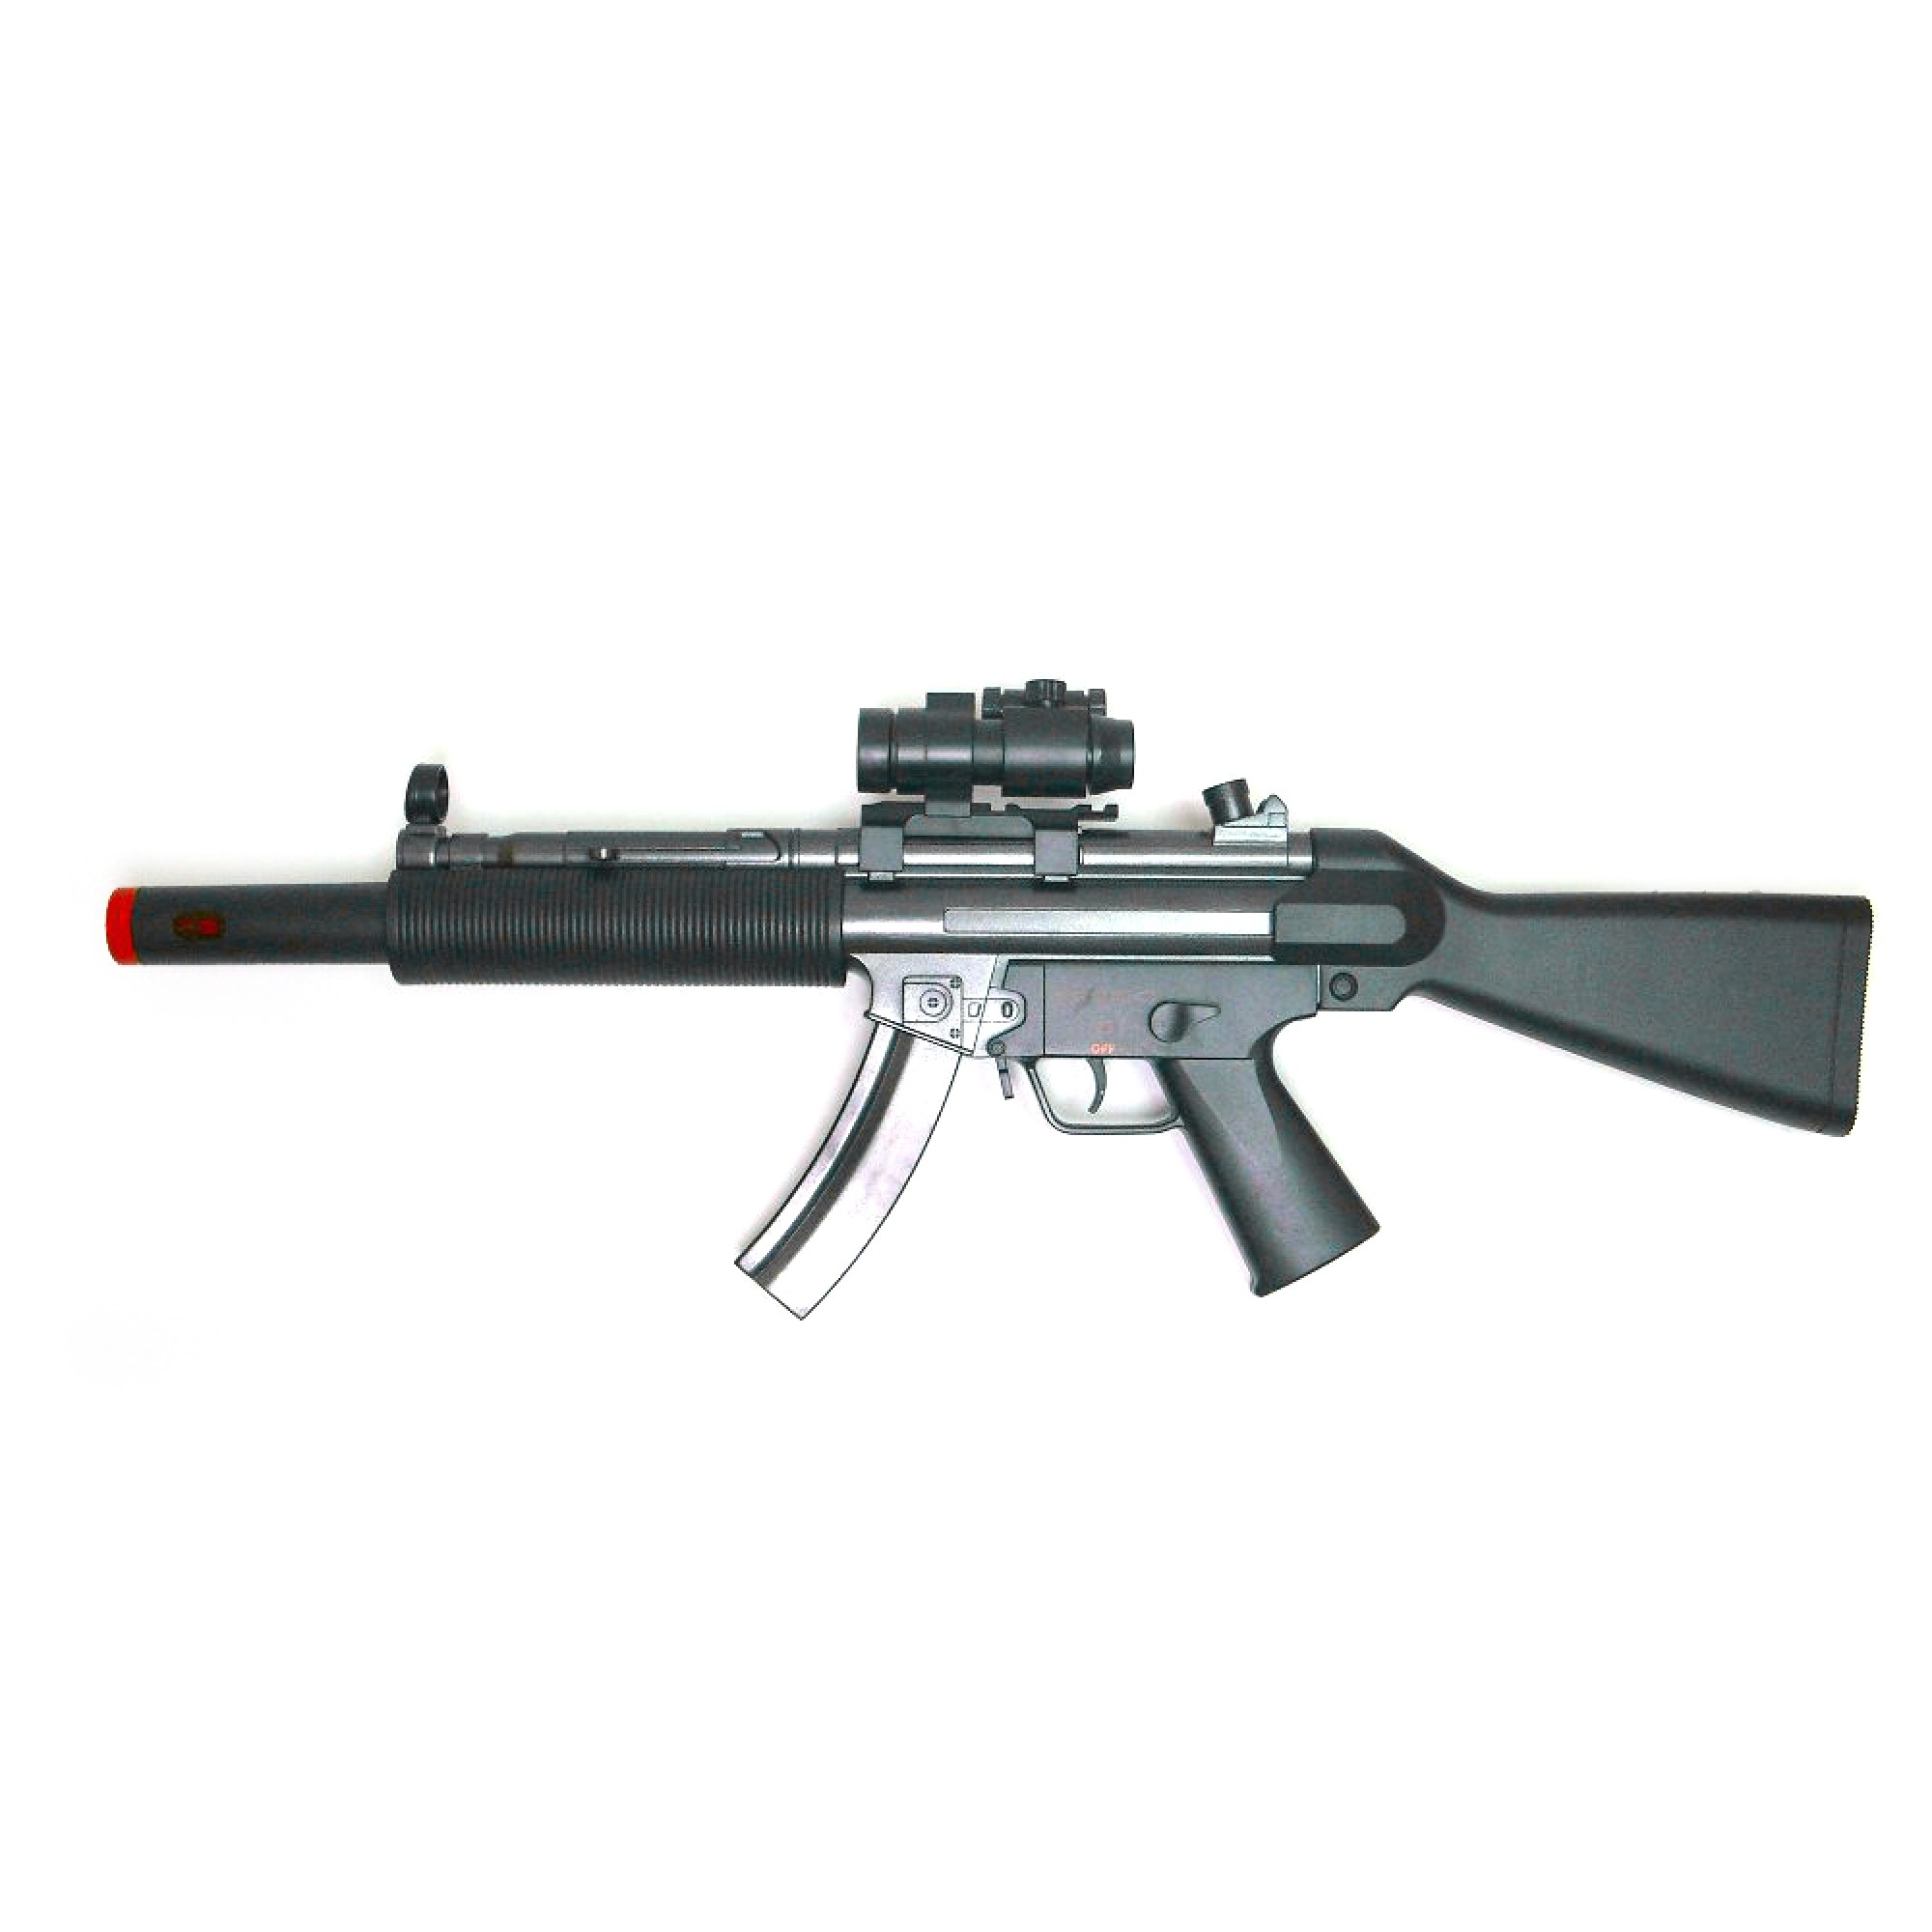 MP5 SD5 W/Light, Sound, Vibration & Viewer